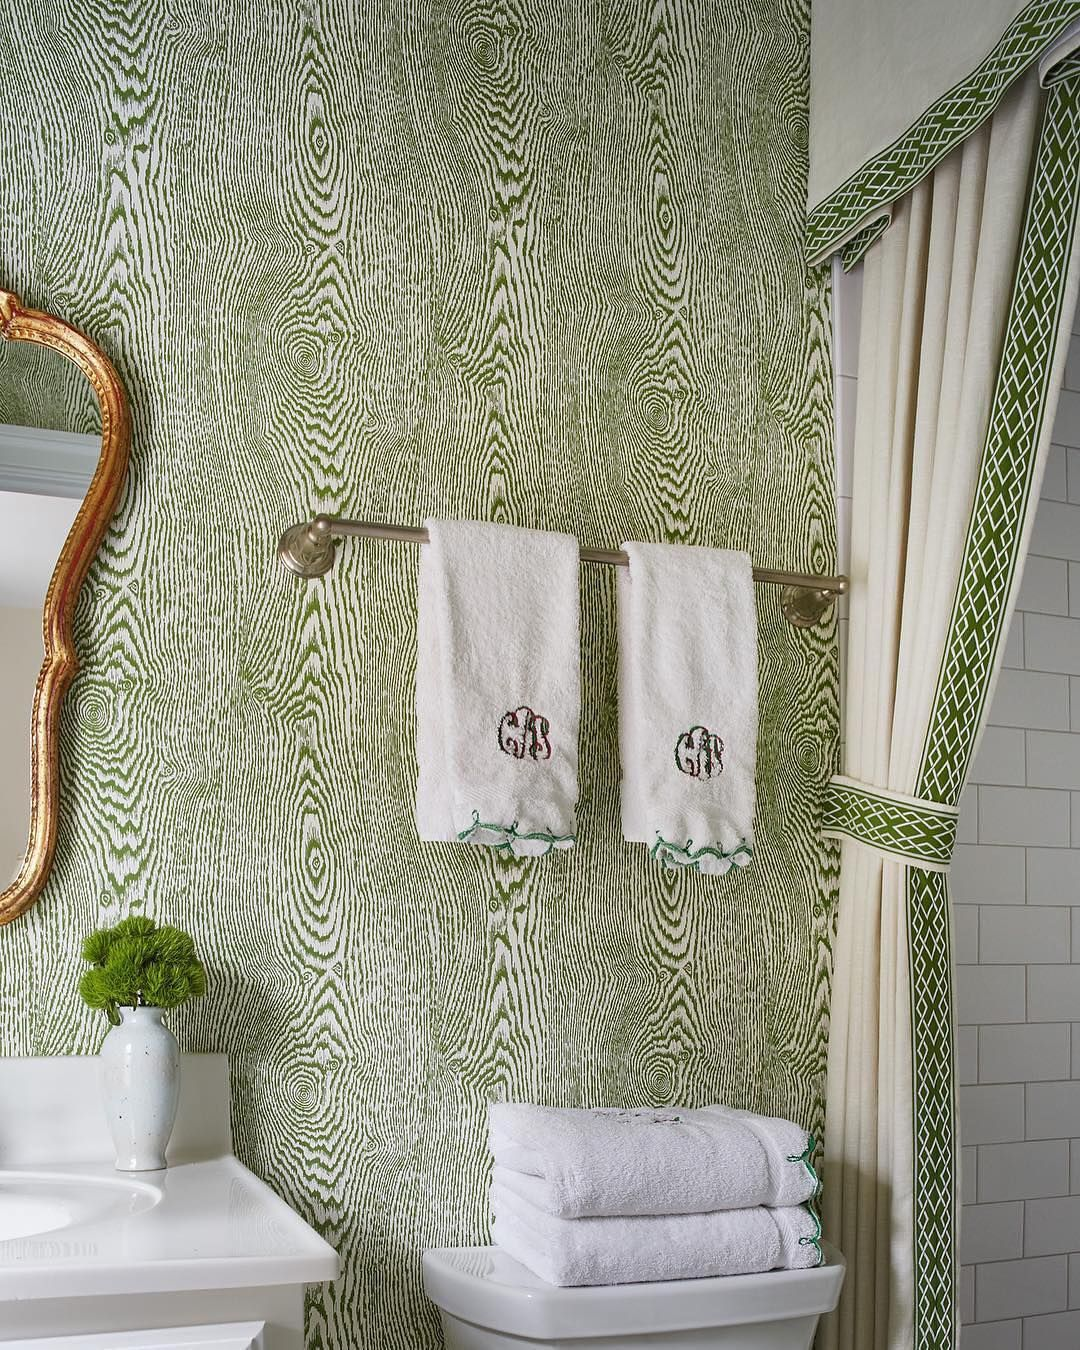 Woods Wallcovering Can Serve As A Stunning Sophisticated Background Or As A Striking Statement Gooddesi Powder Room Decor Wood Grain Wallpaper Wall Coverings